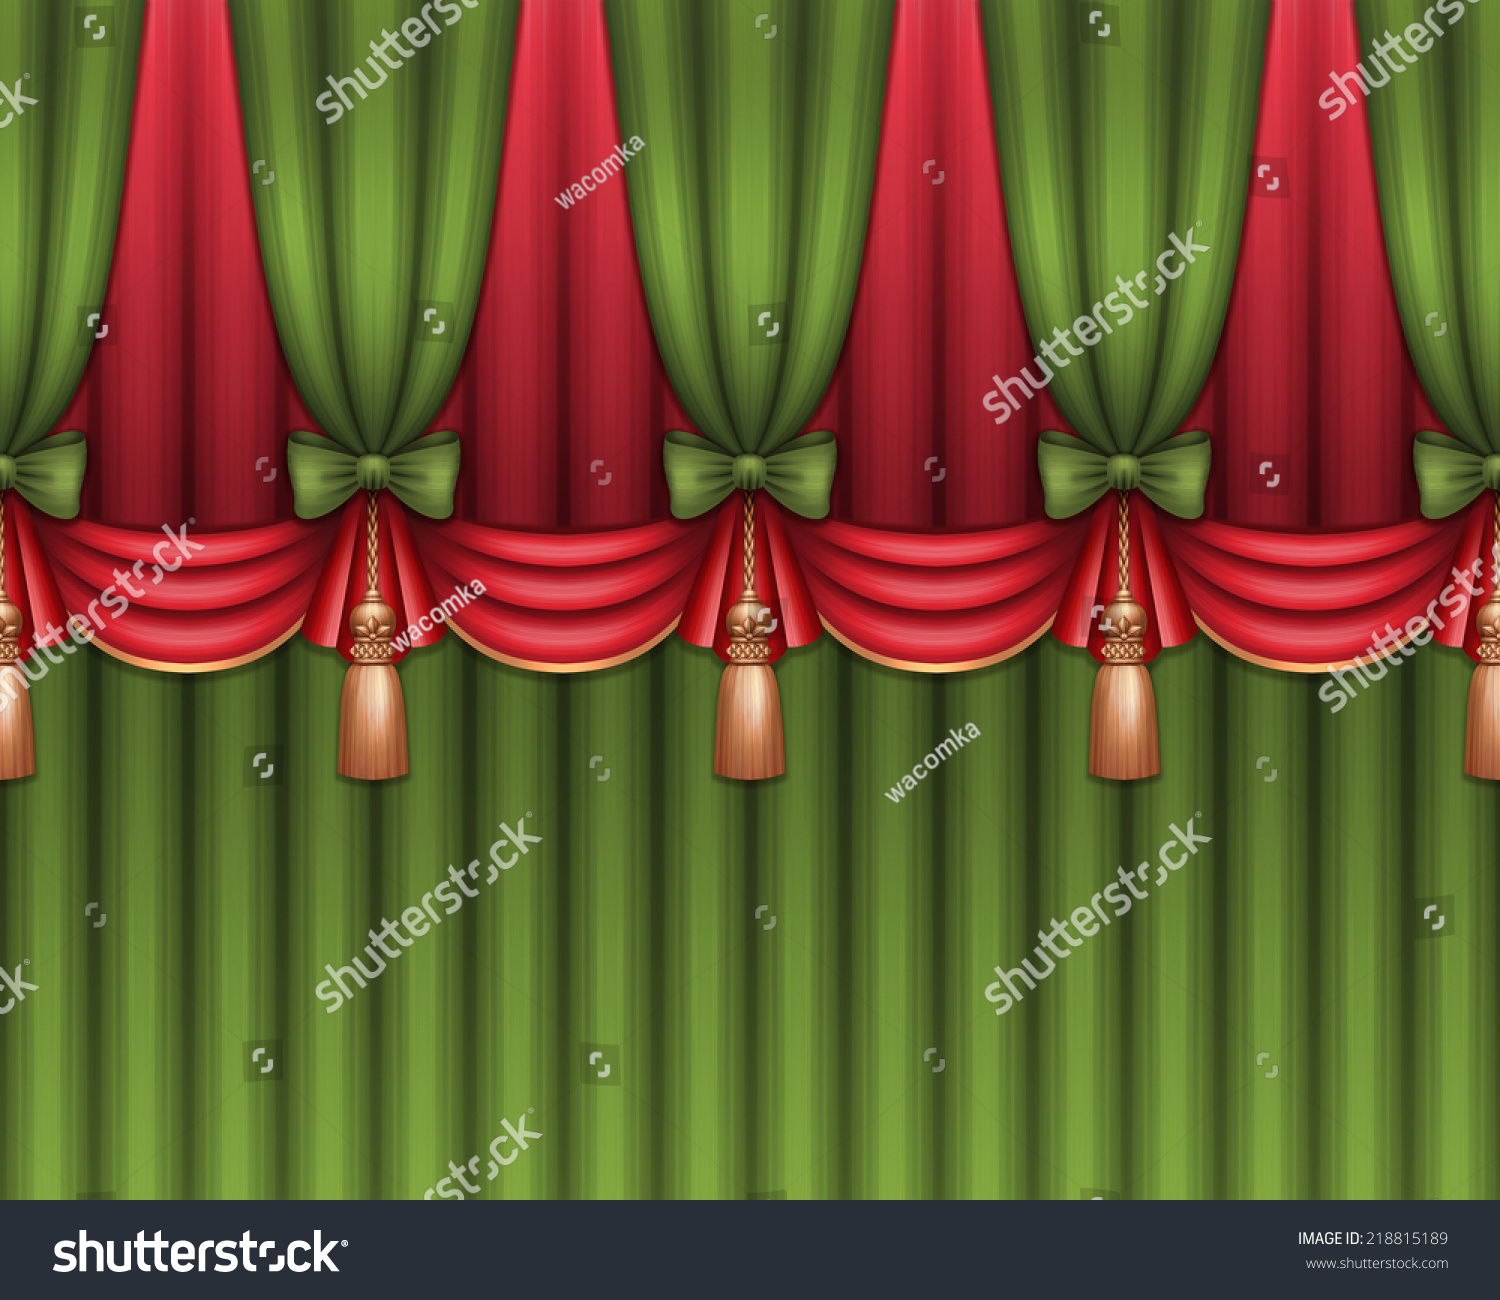 Green stage curtains - Red And Green Stage Curtain Drape Illustration Festive Christmas Background Seamless Border